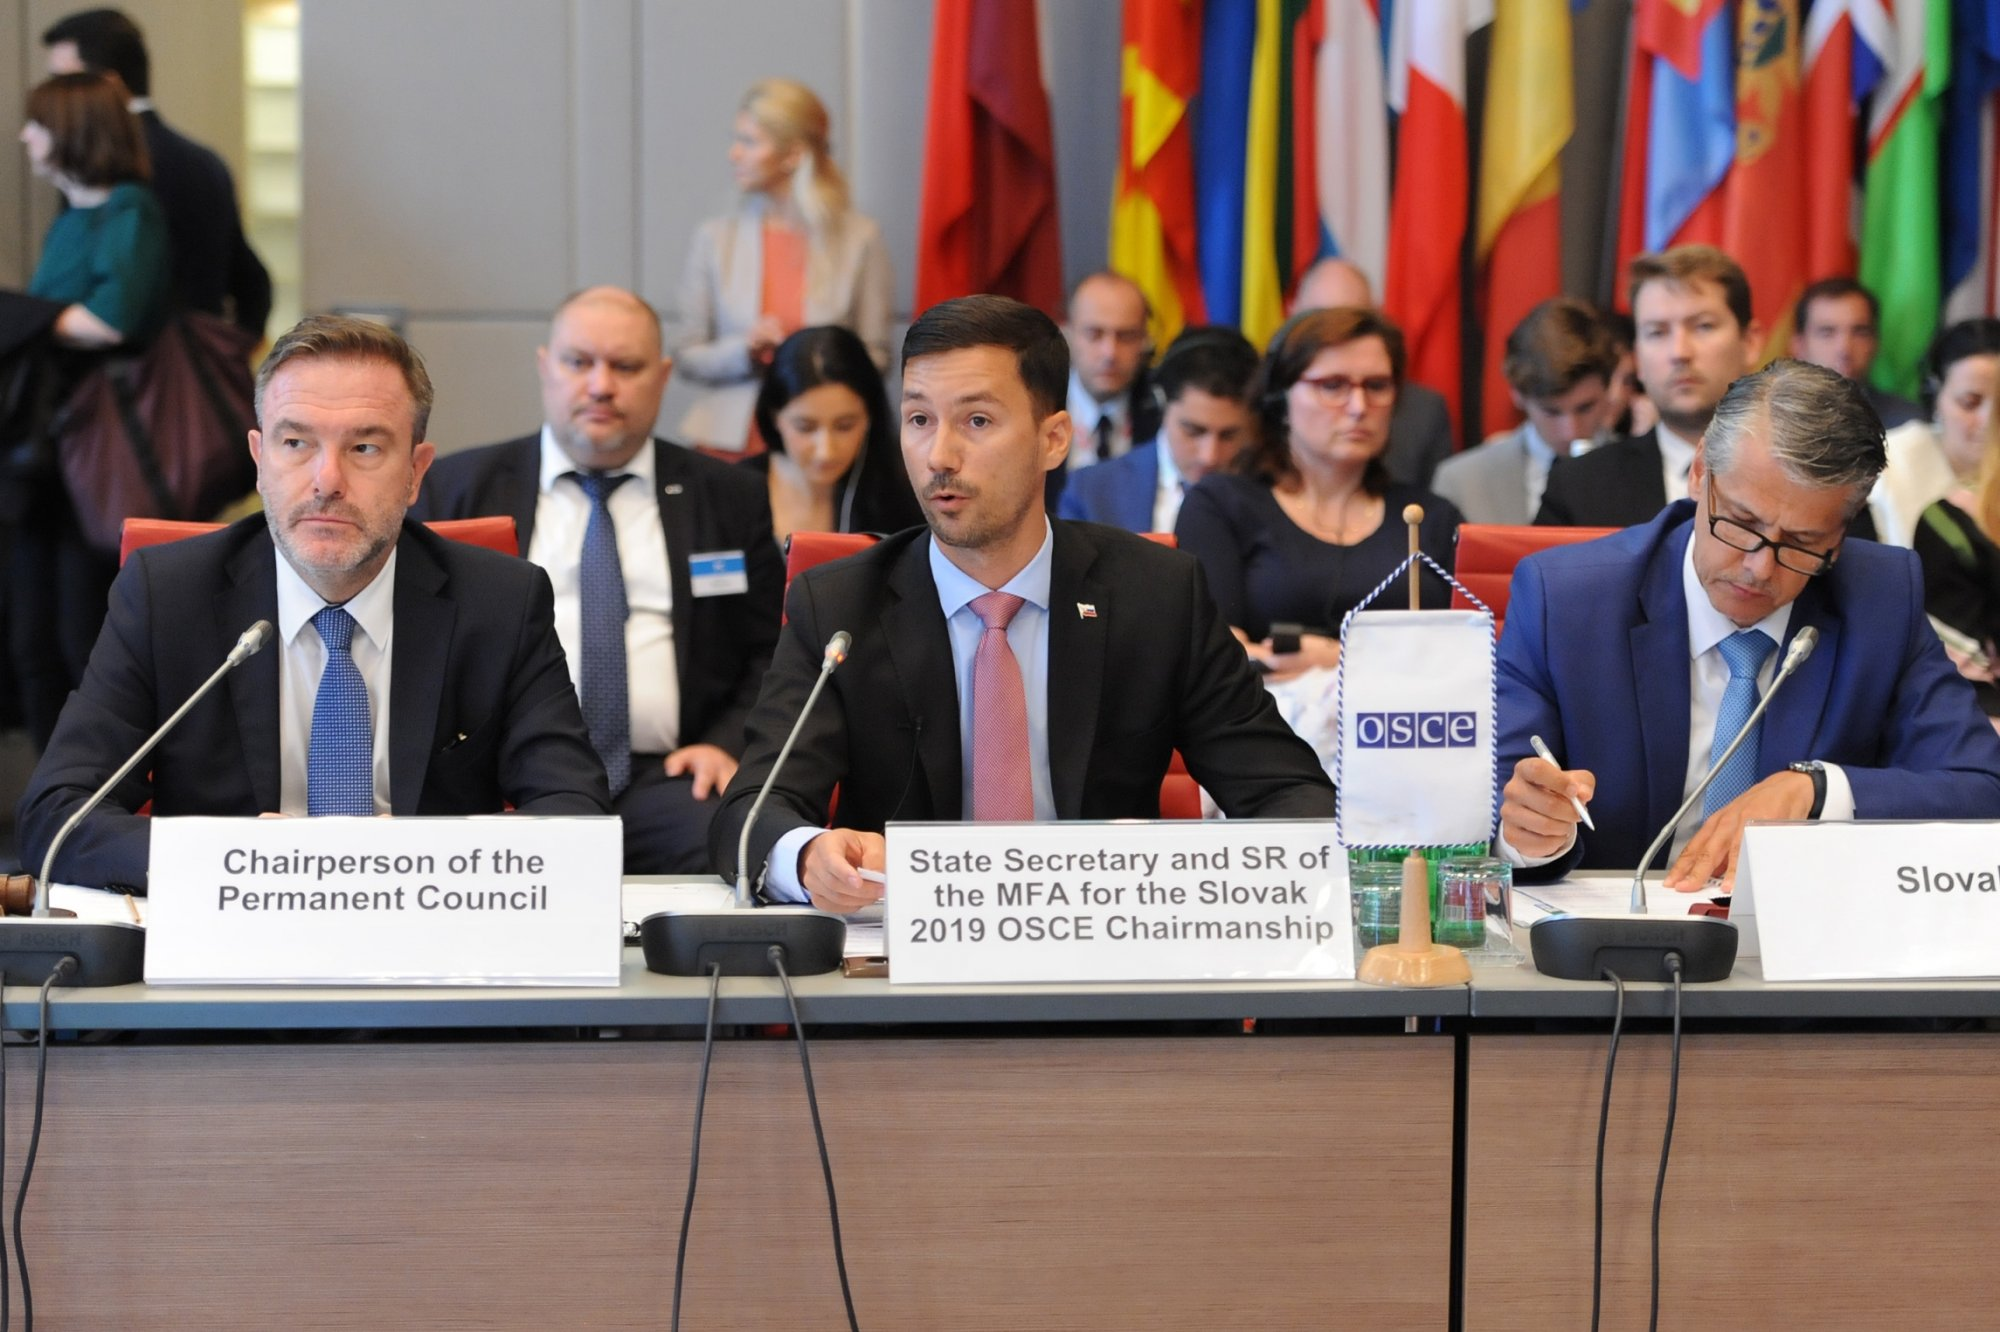 Slovakian OSCE Chairmanship in 2019 aims to promote multilateralism b9aad68b1bc